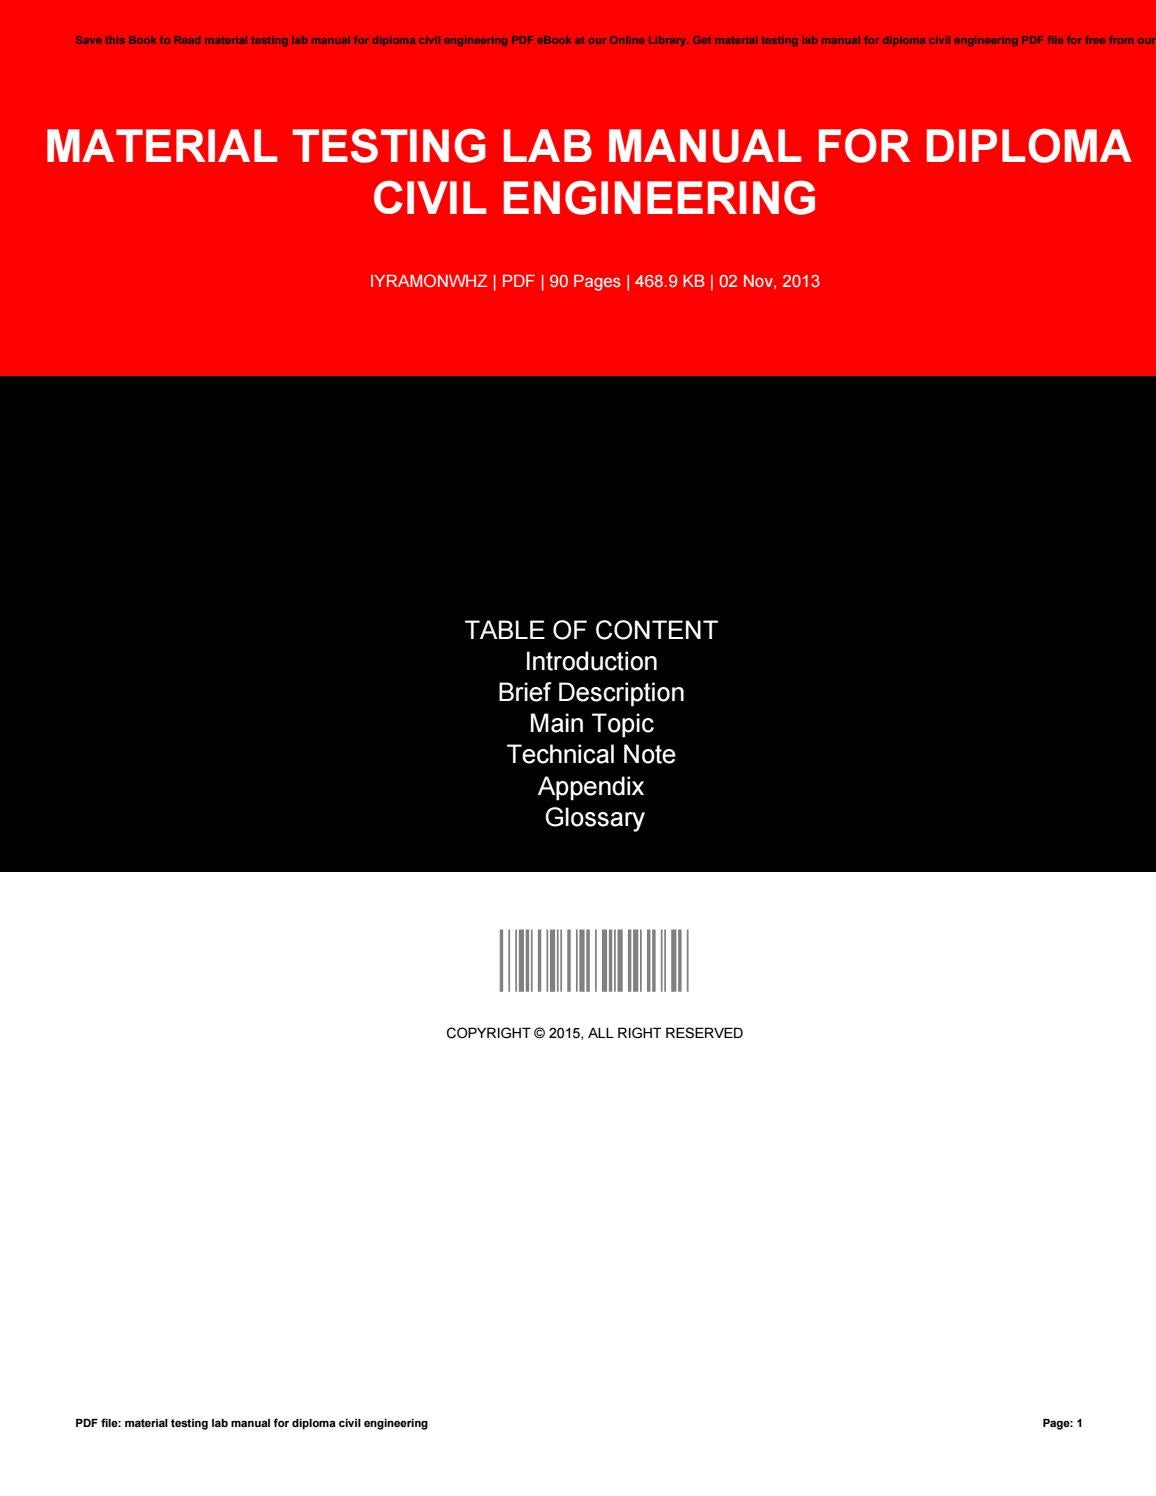 Material testing lab manual for diploma civil engineering by Eleanor - issuu